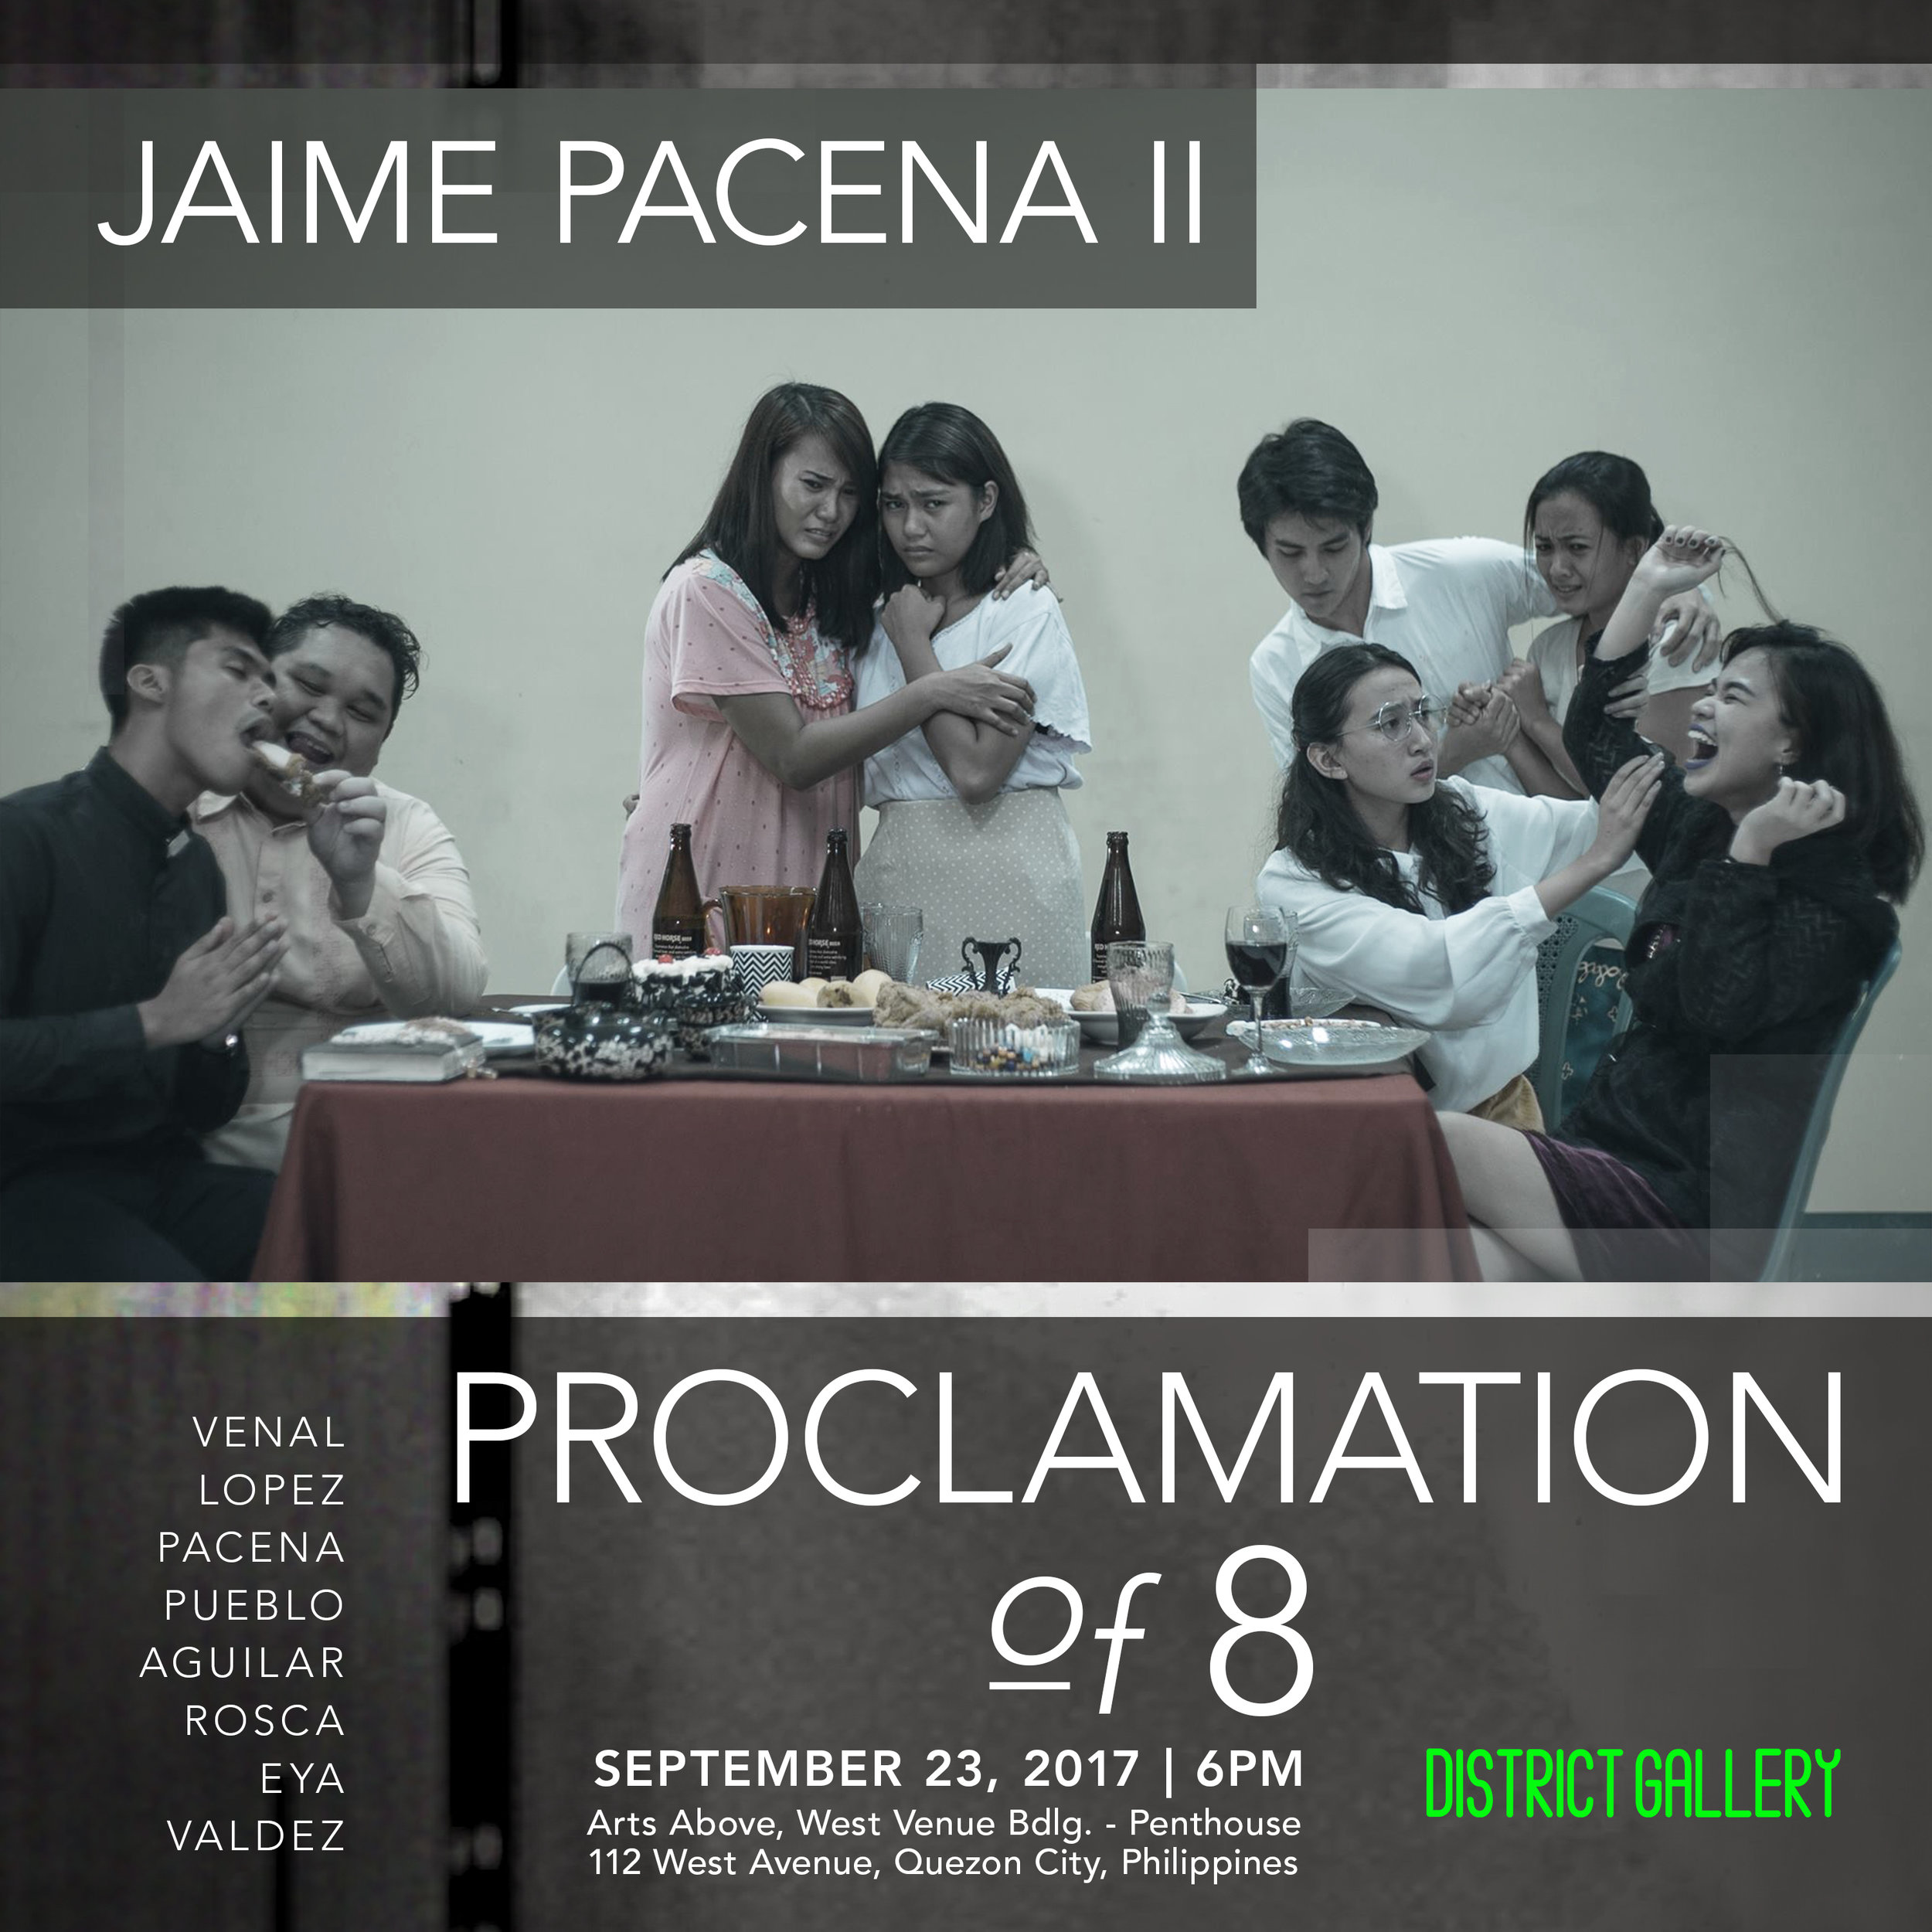 3 PROCLAMATION of Jaime Pacena II.jpg